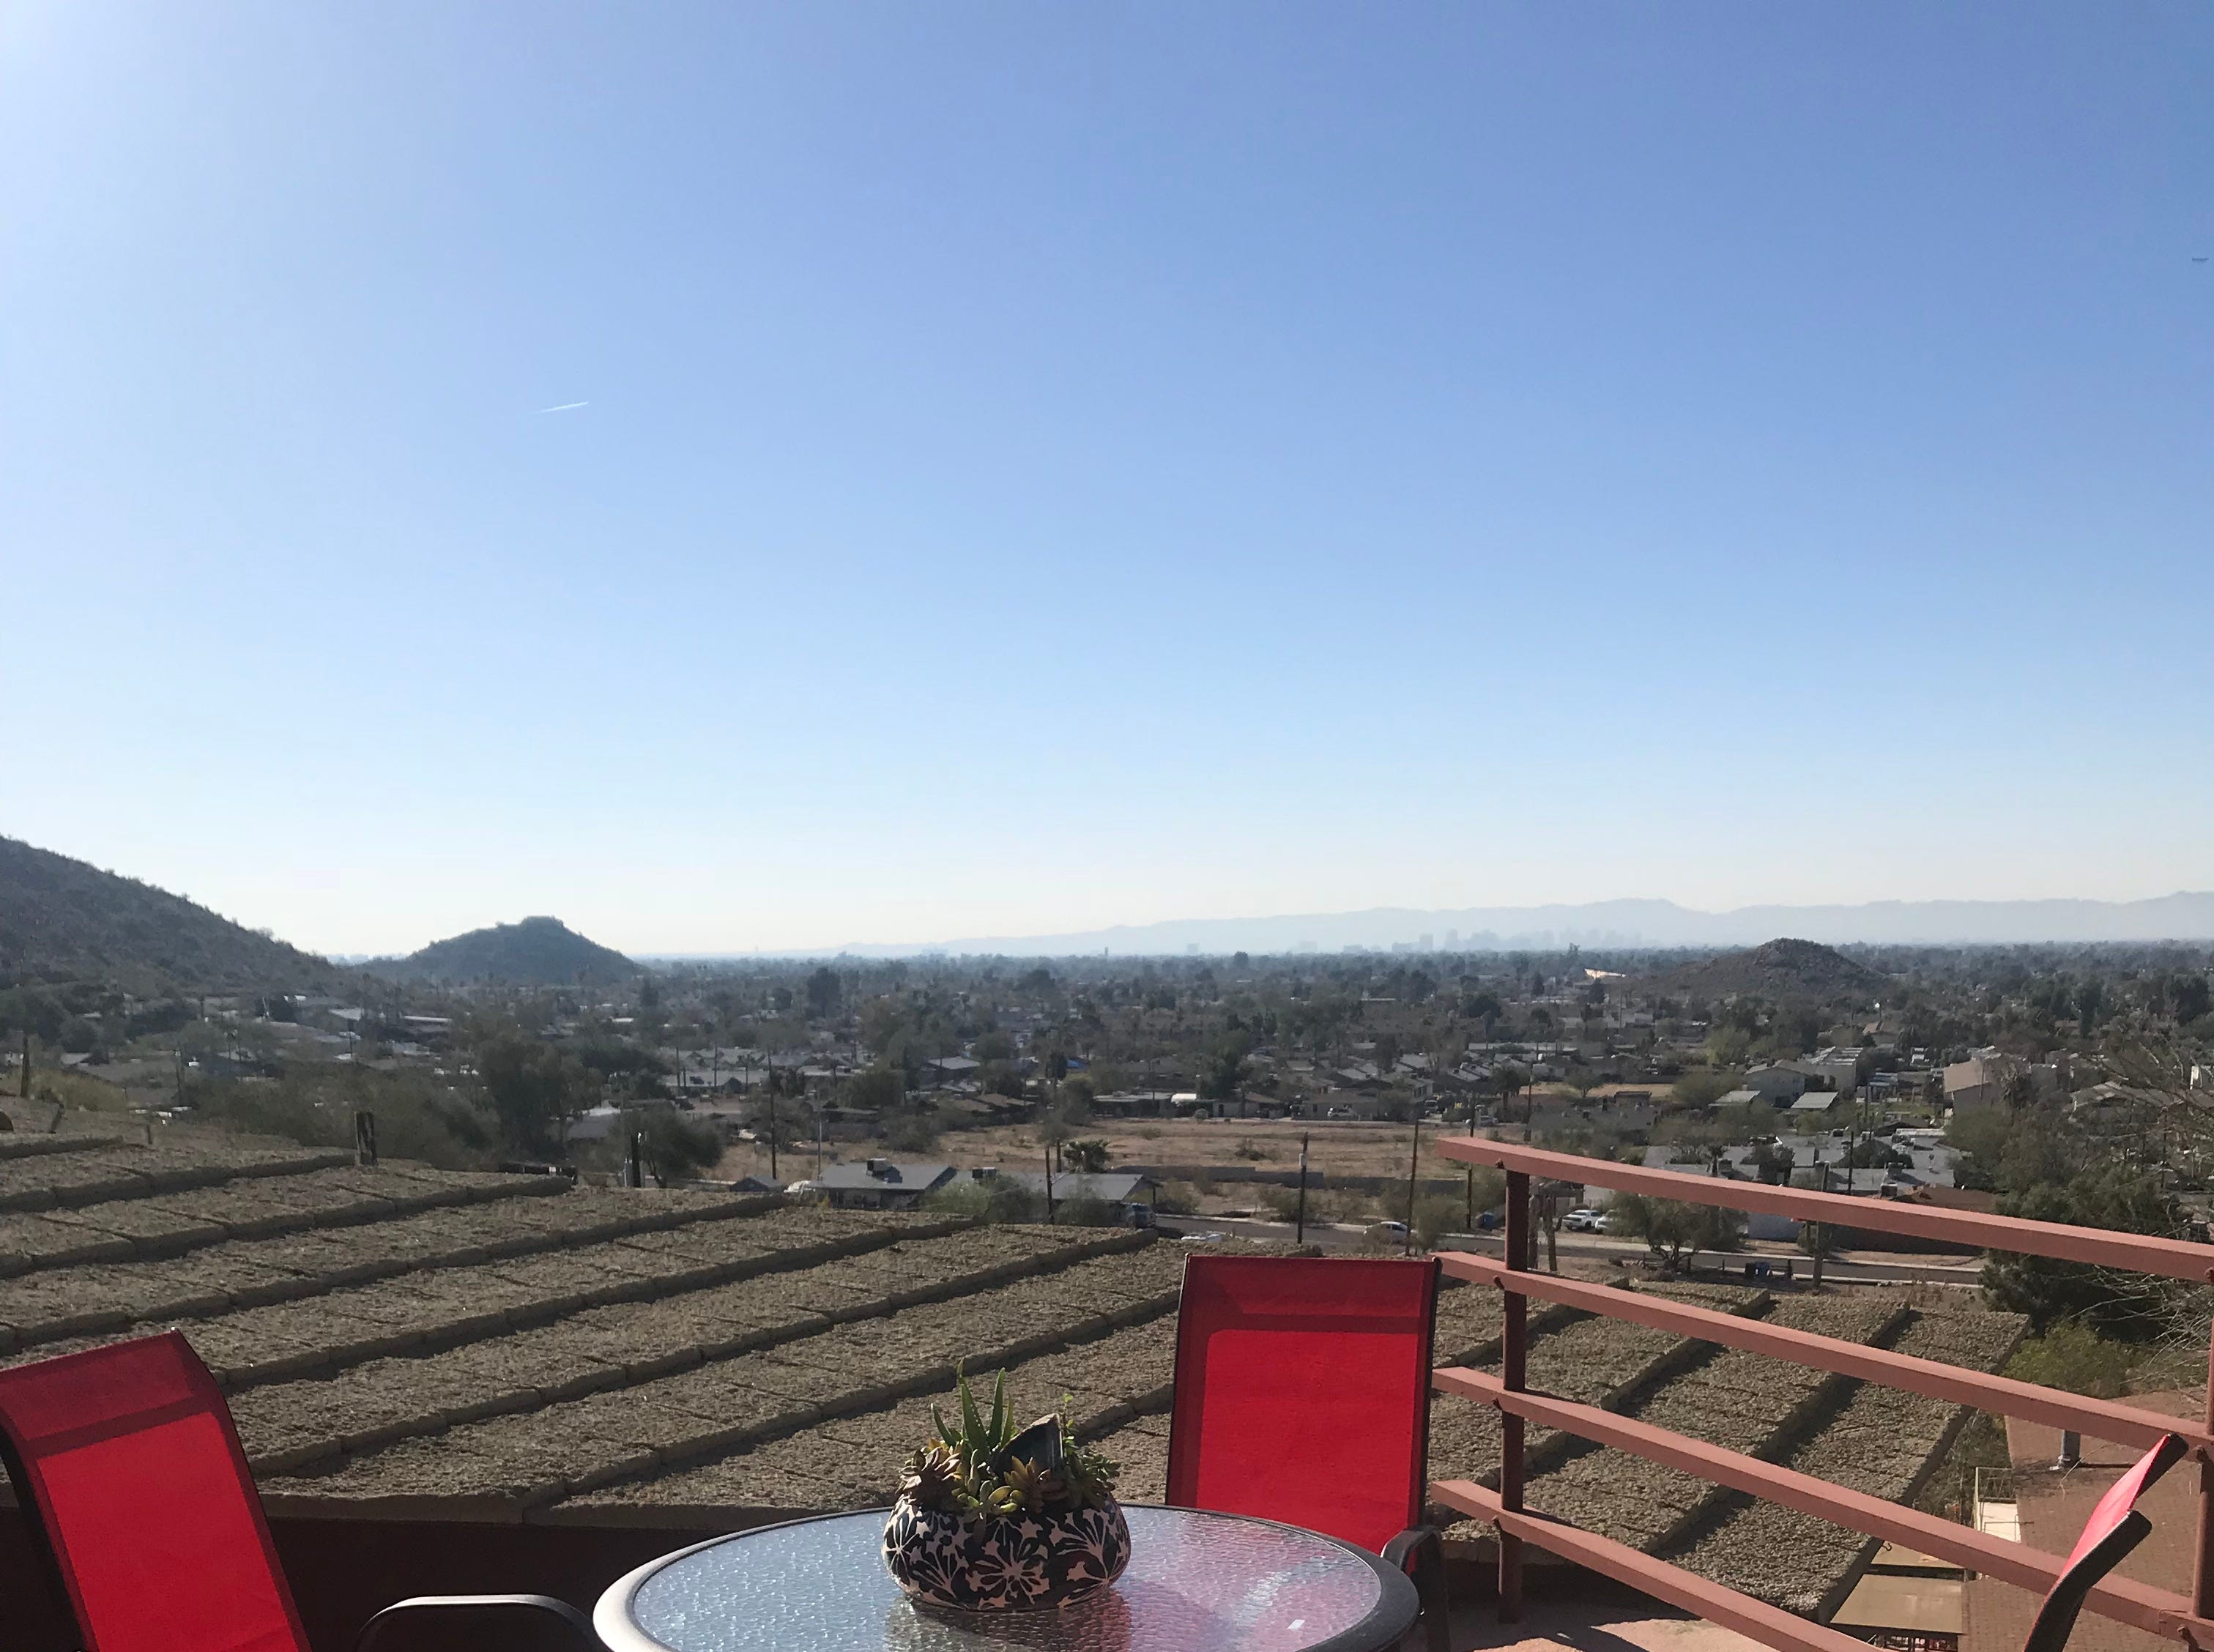 This view from the upper deck shows the view toward downtown Phoenix and South Mountain.